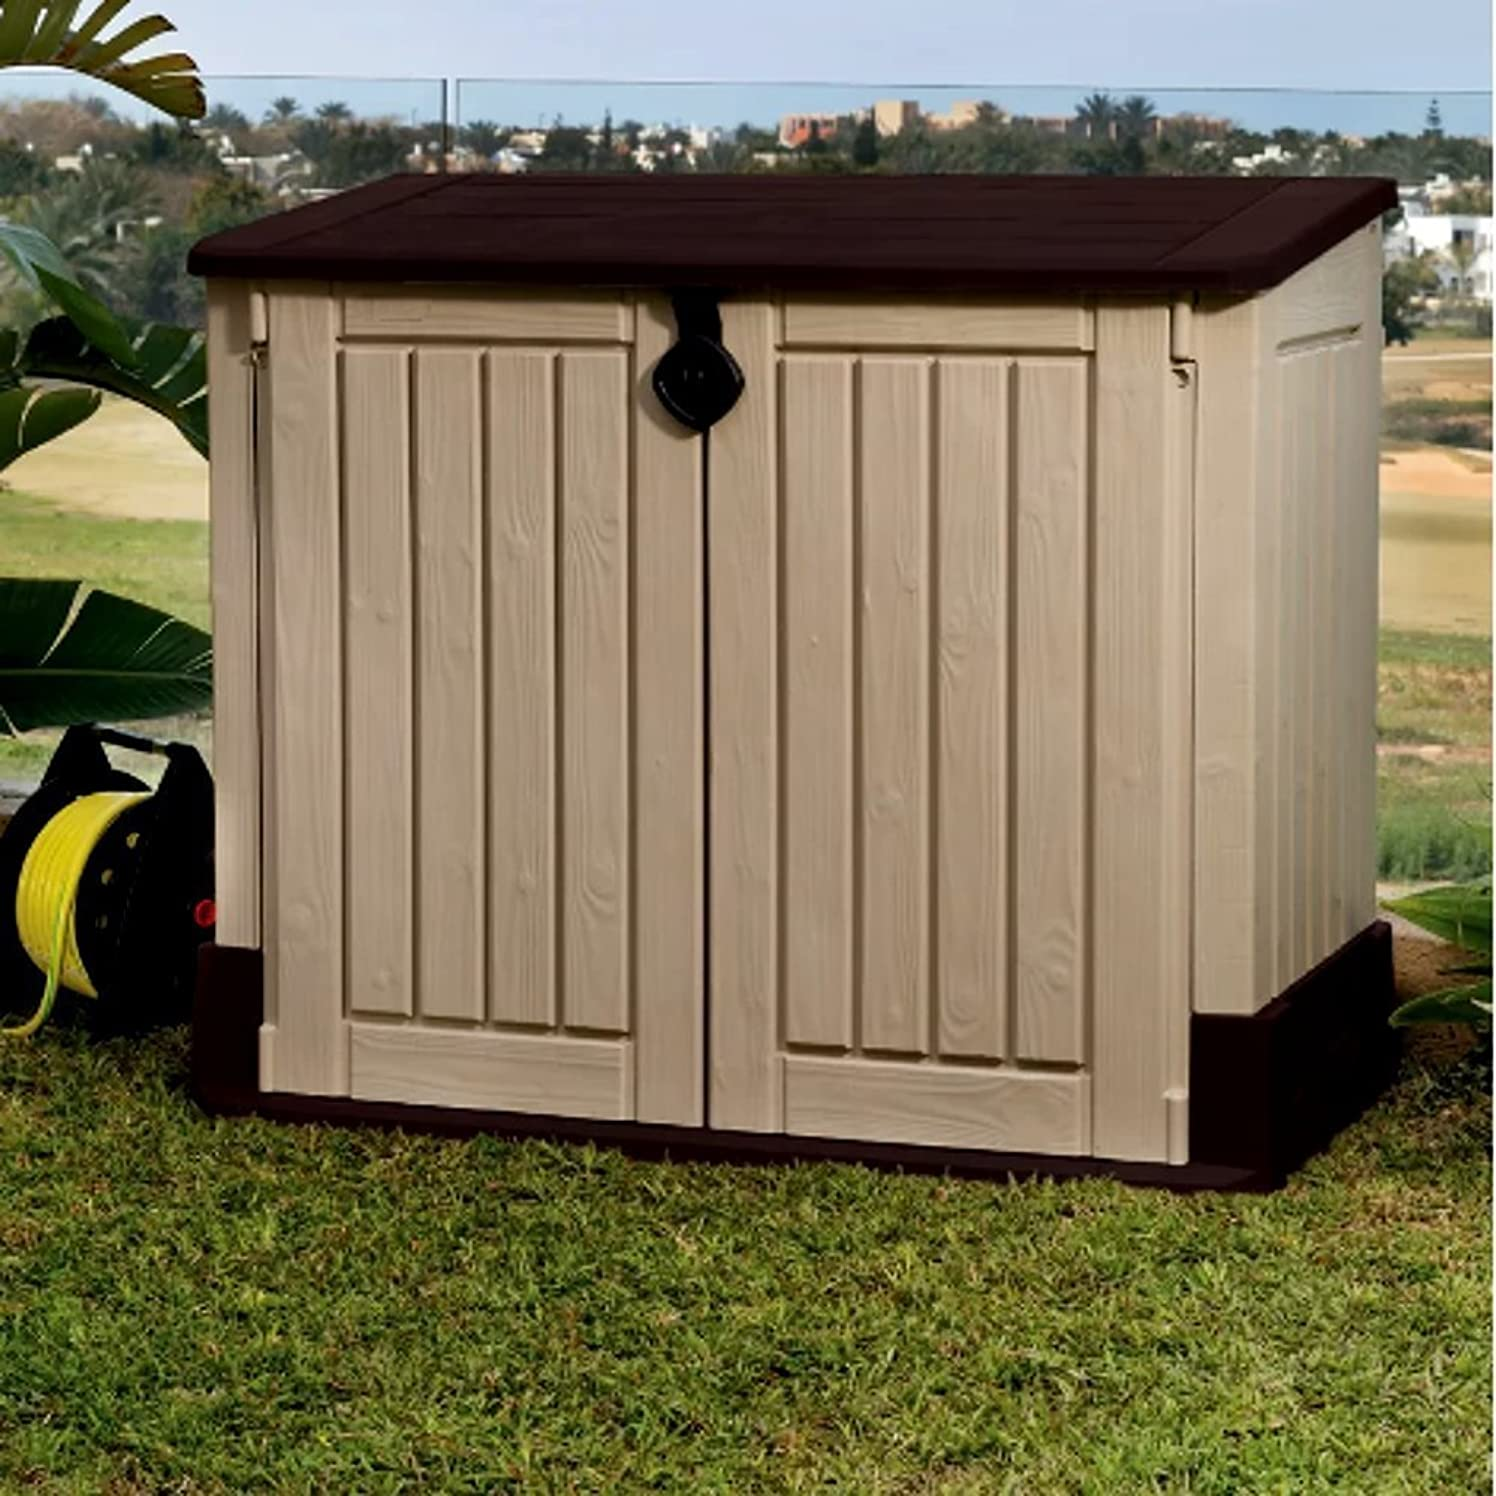 Garbage Can Shed for Outdoor Use, Contemporary Rustic MIDI Plastic 30-cubic feet Horizontal Garbage Shed